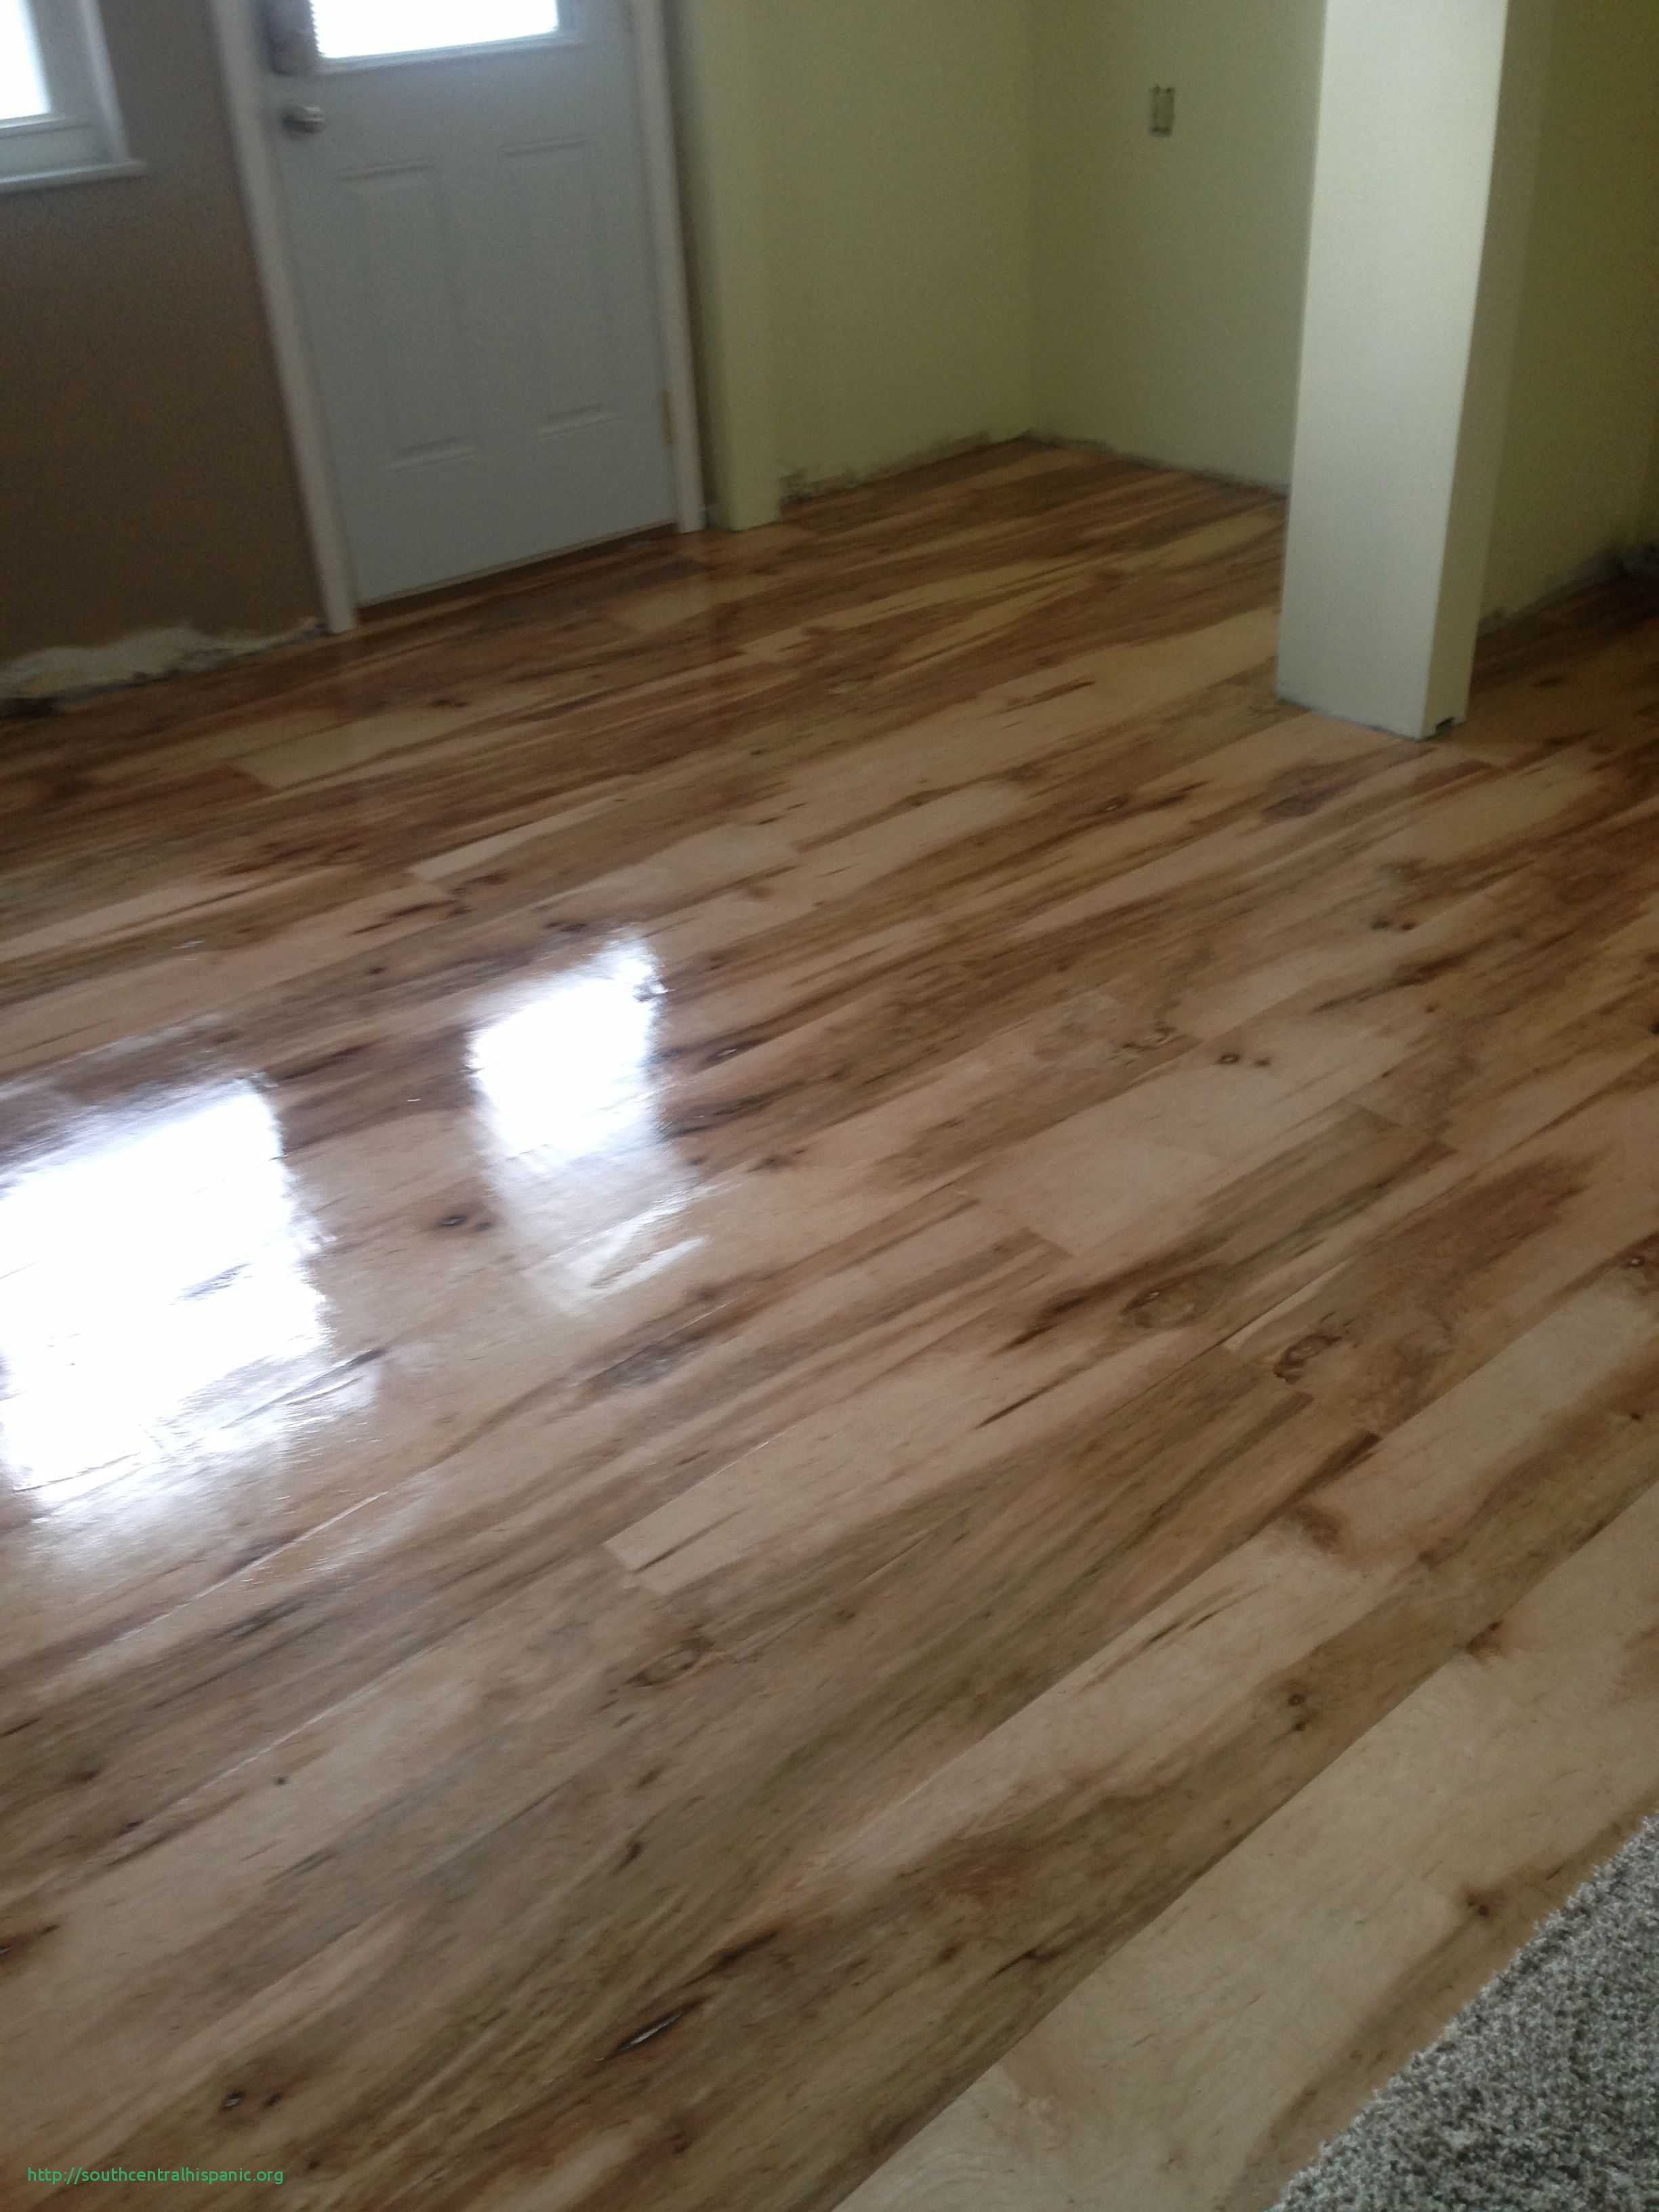 Solid Hardwood Flooring Sale Of Beautiful Difference Between Hardwood and Laminate Flooring Laminate In Beautiful Difference Between Hardwood and Laminate Flooring Laminate Flooring Chesterfield Inspirant Engaging Discount Hardwood